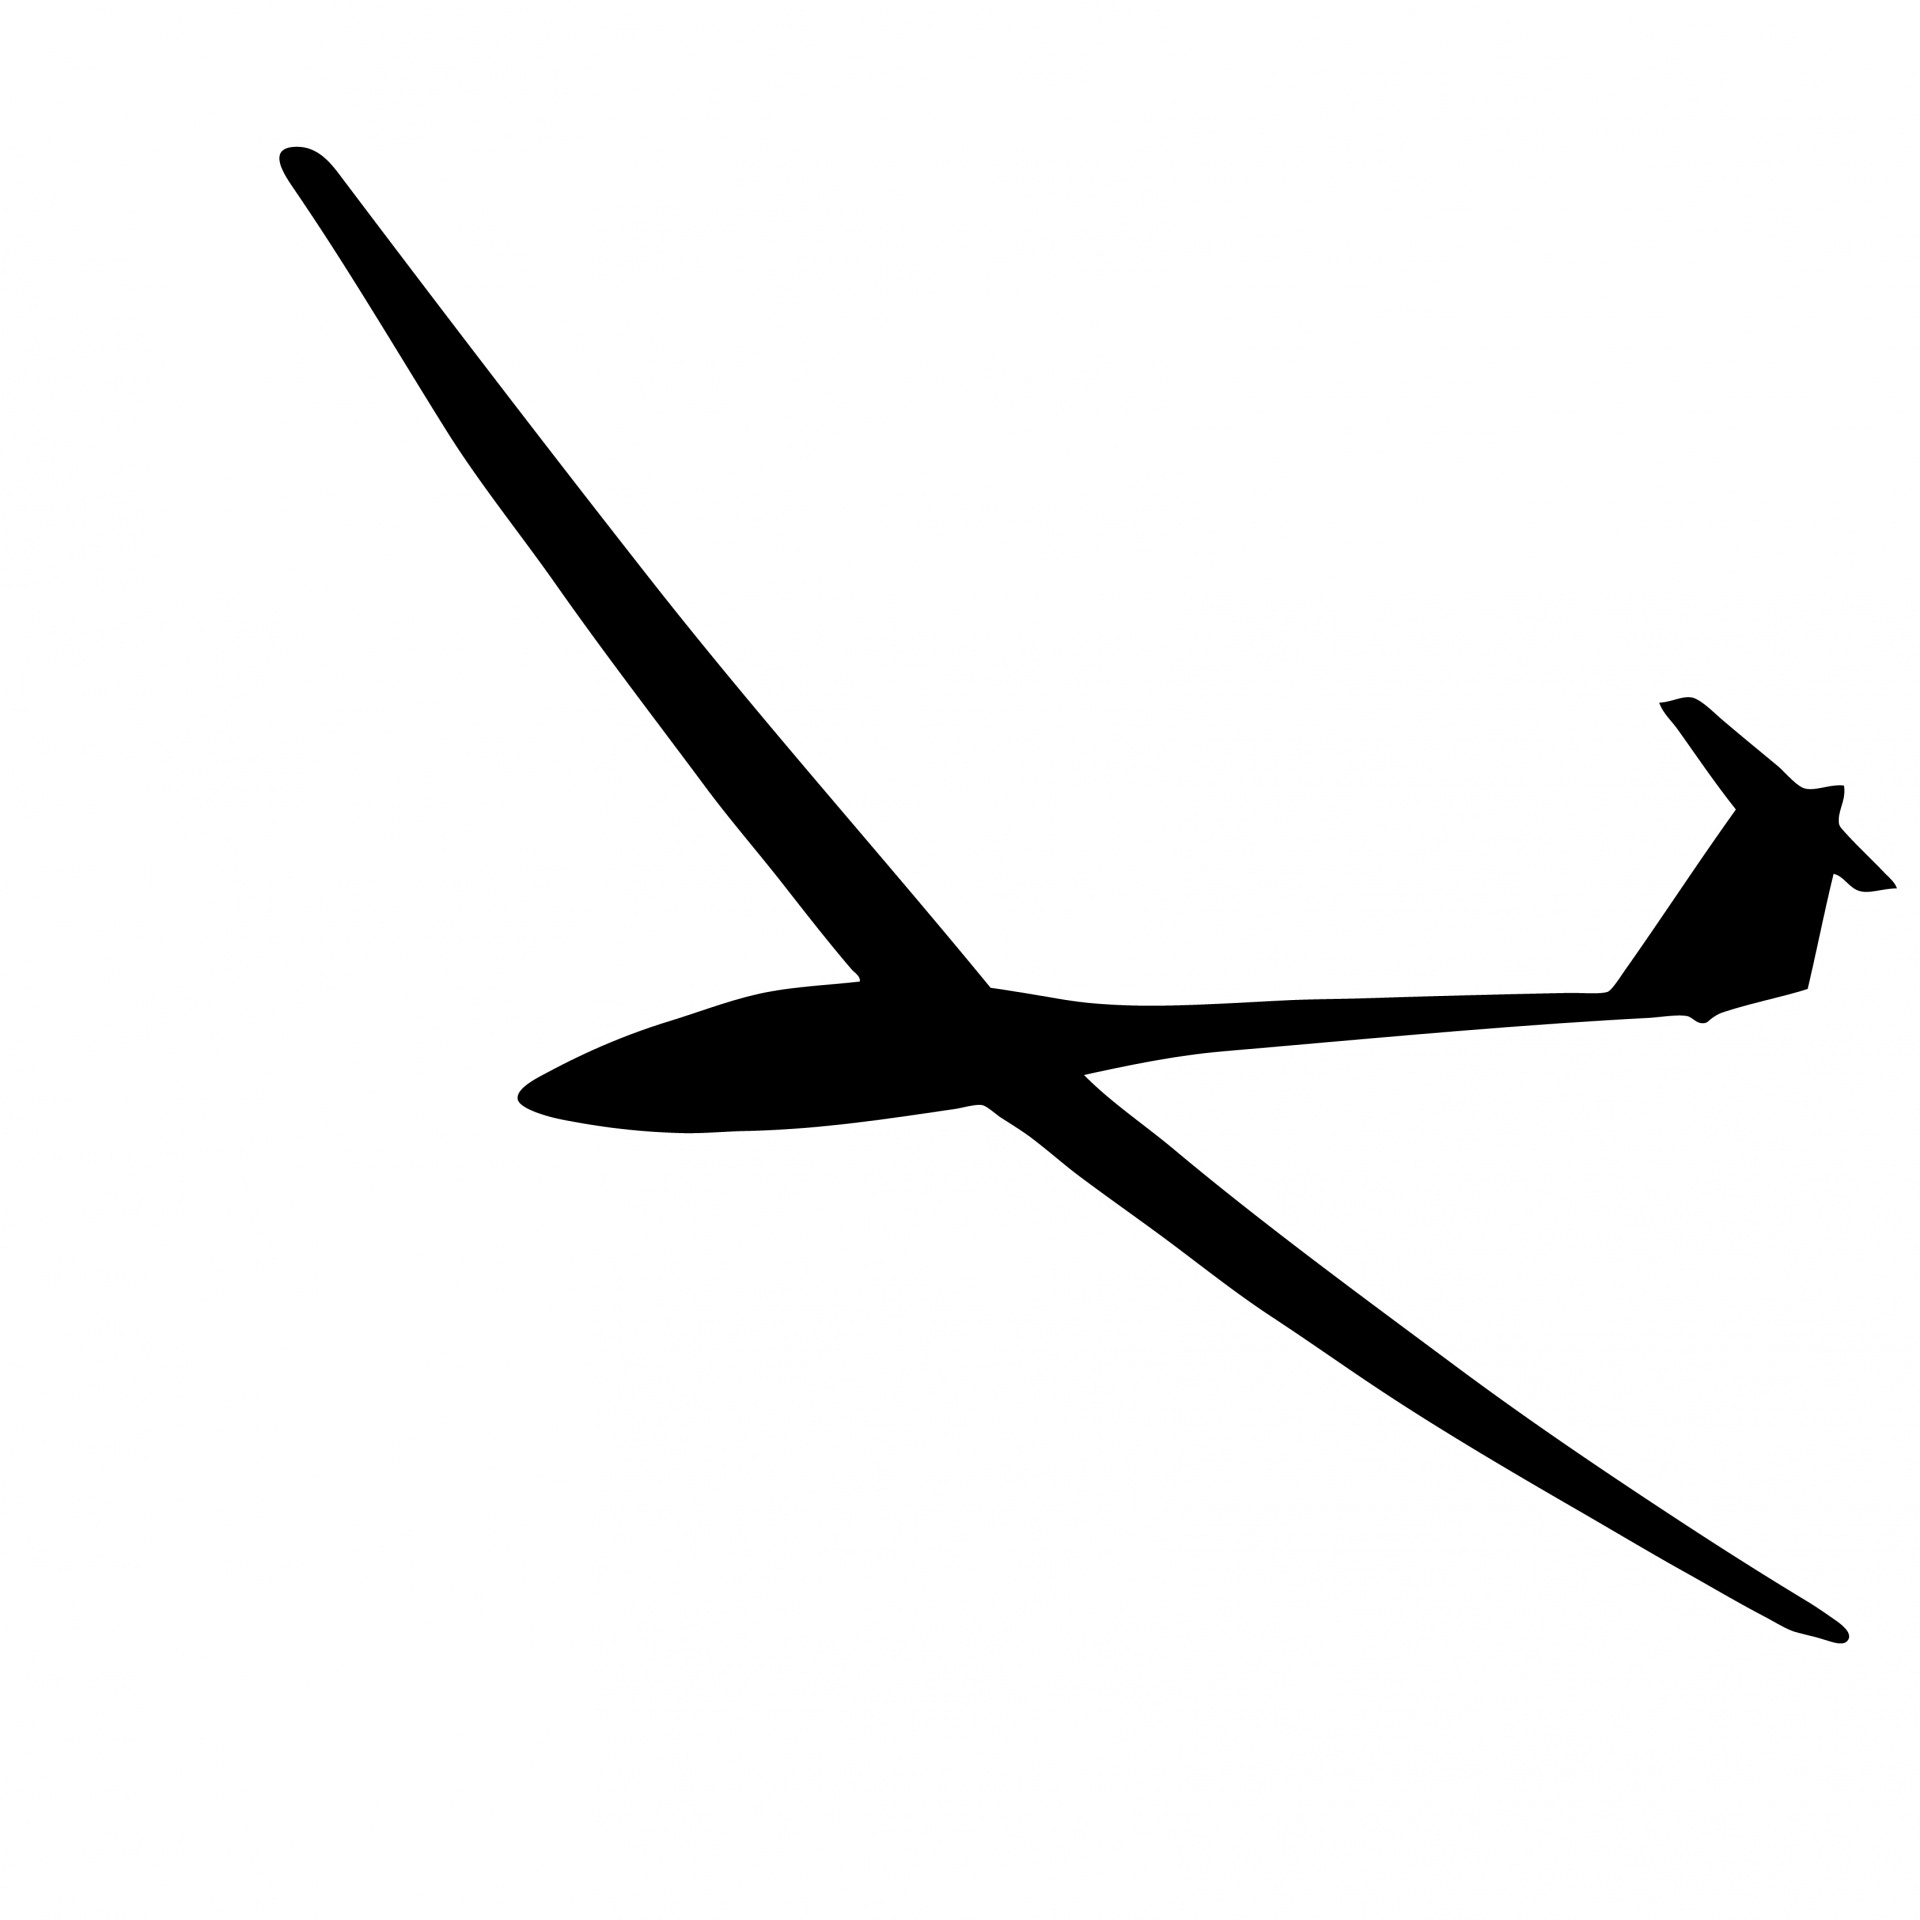 Glider Silhouette Free Stock Photo